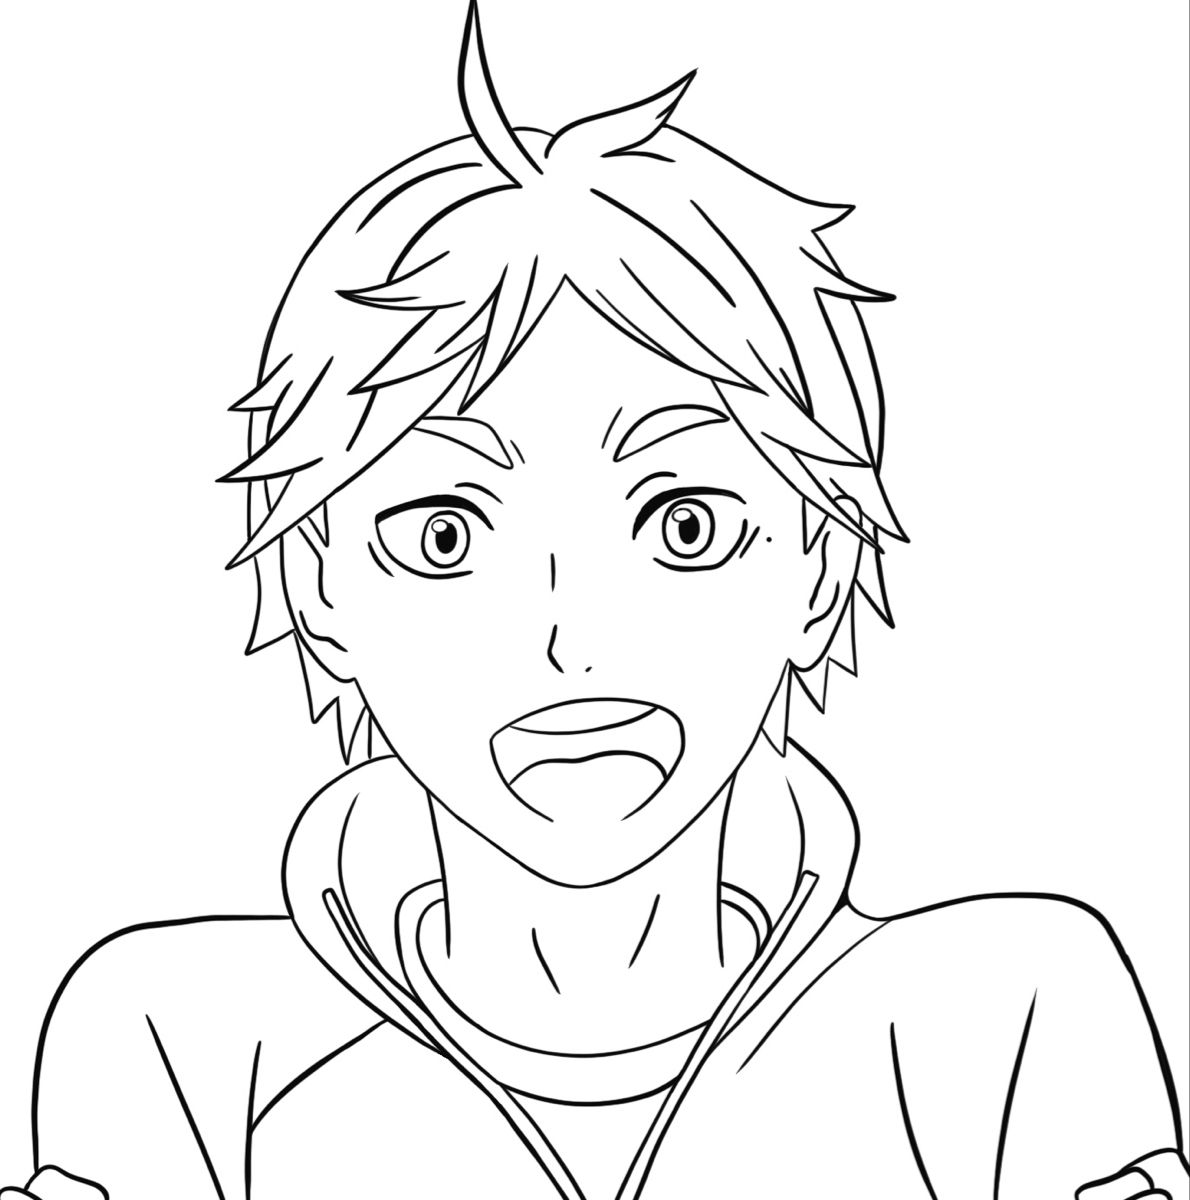 Sugawara Coloring Page 1 In 2021 Anime Character Drawing Anime Drawings Sketches Anime Lineart